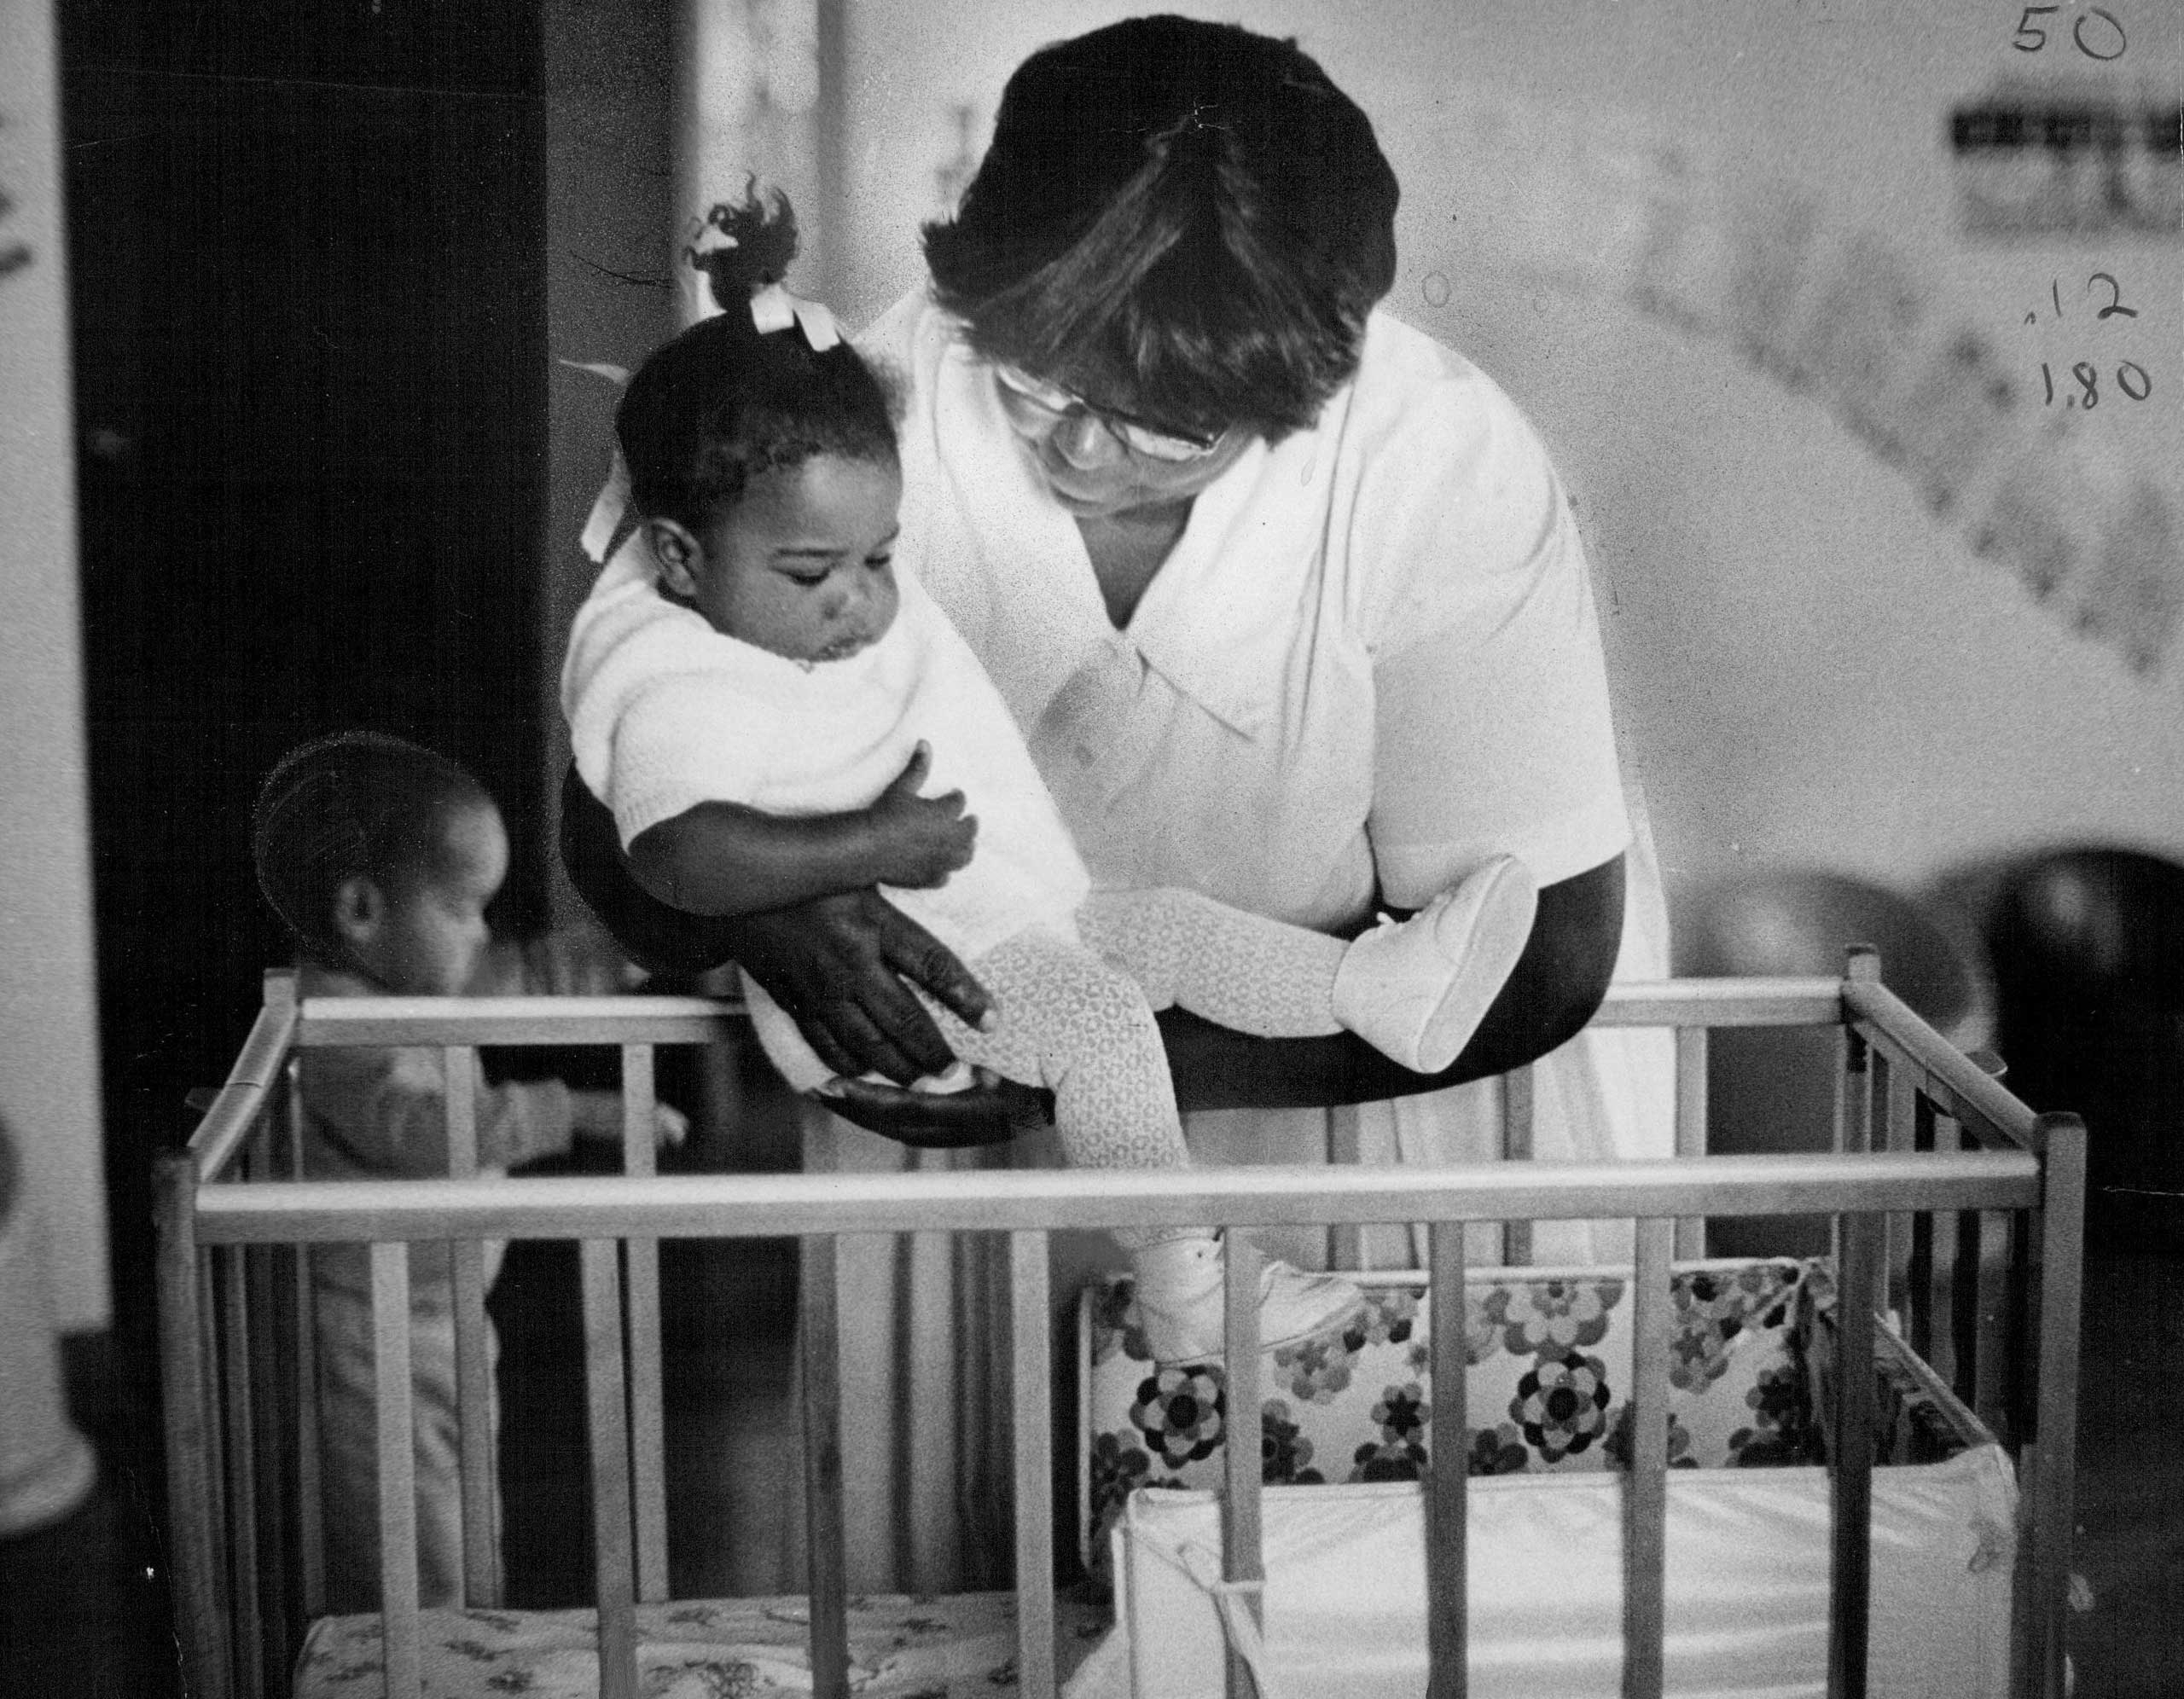 """<b>Universal Child Care, Nixon, 1971</b> America came close to a system of universal, federally financed day care. But after the Comprehensive Child Development Act passed Congress on a bipartisan vote in 1971, President Nixon vetoed it, arguing it would weaken families with """"communal approaches to child rearing."""" The idea then faded from American politics. (Photo: University of Denver nursery, Oct. 13, 1971.)"""